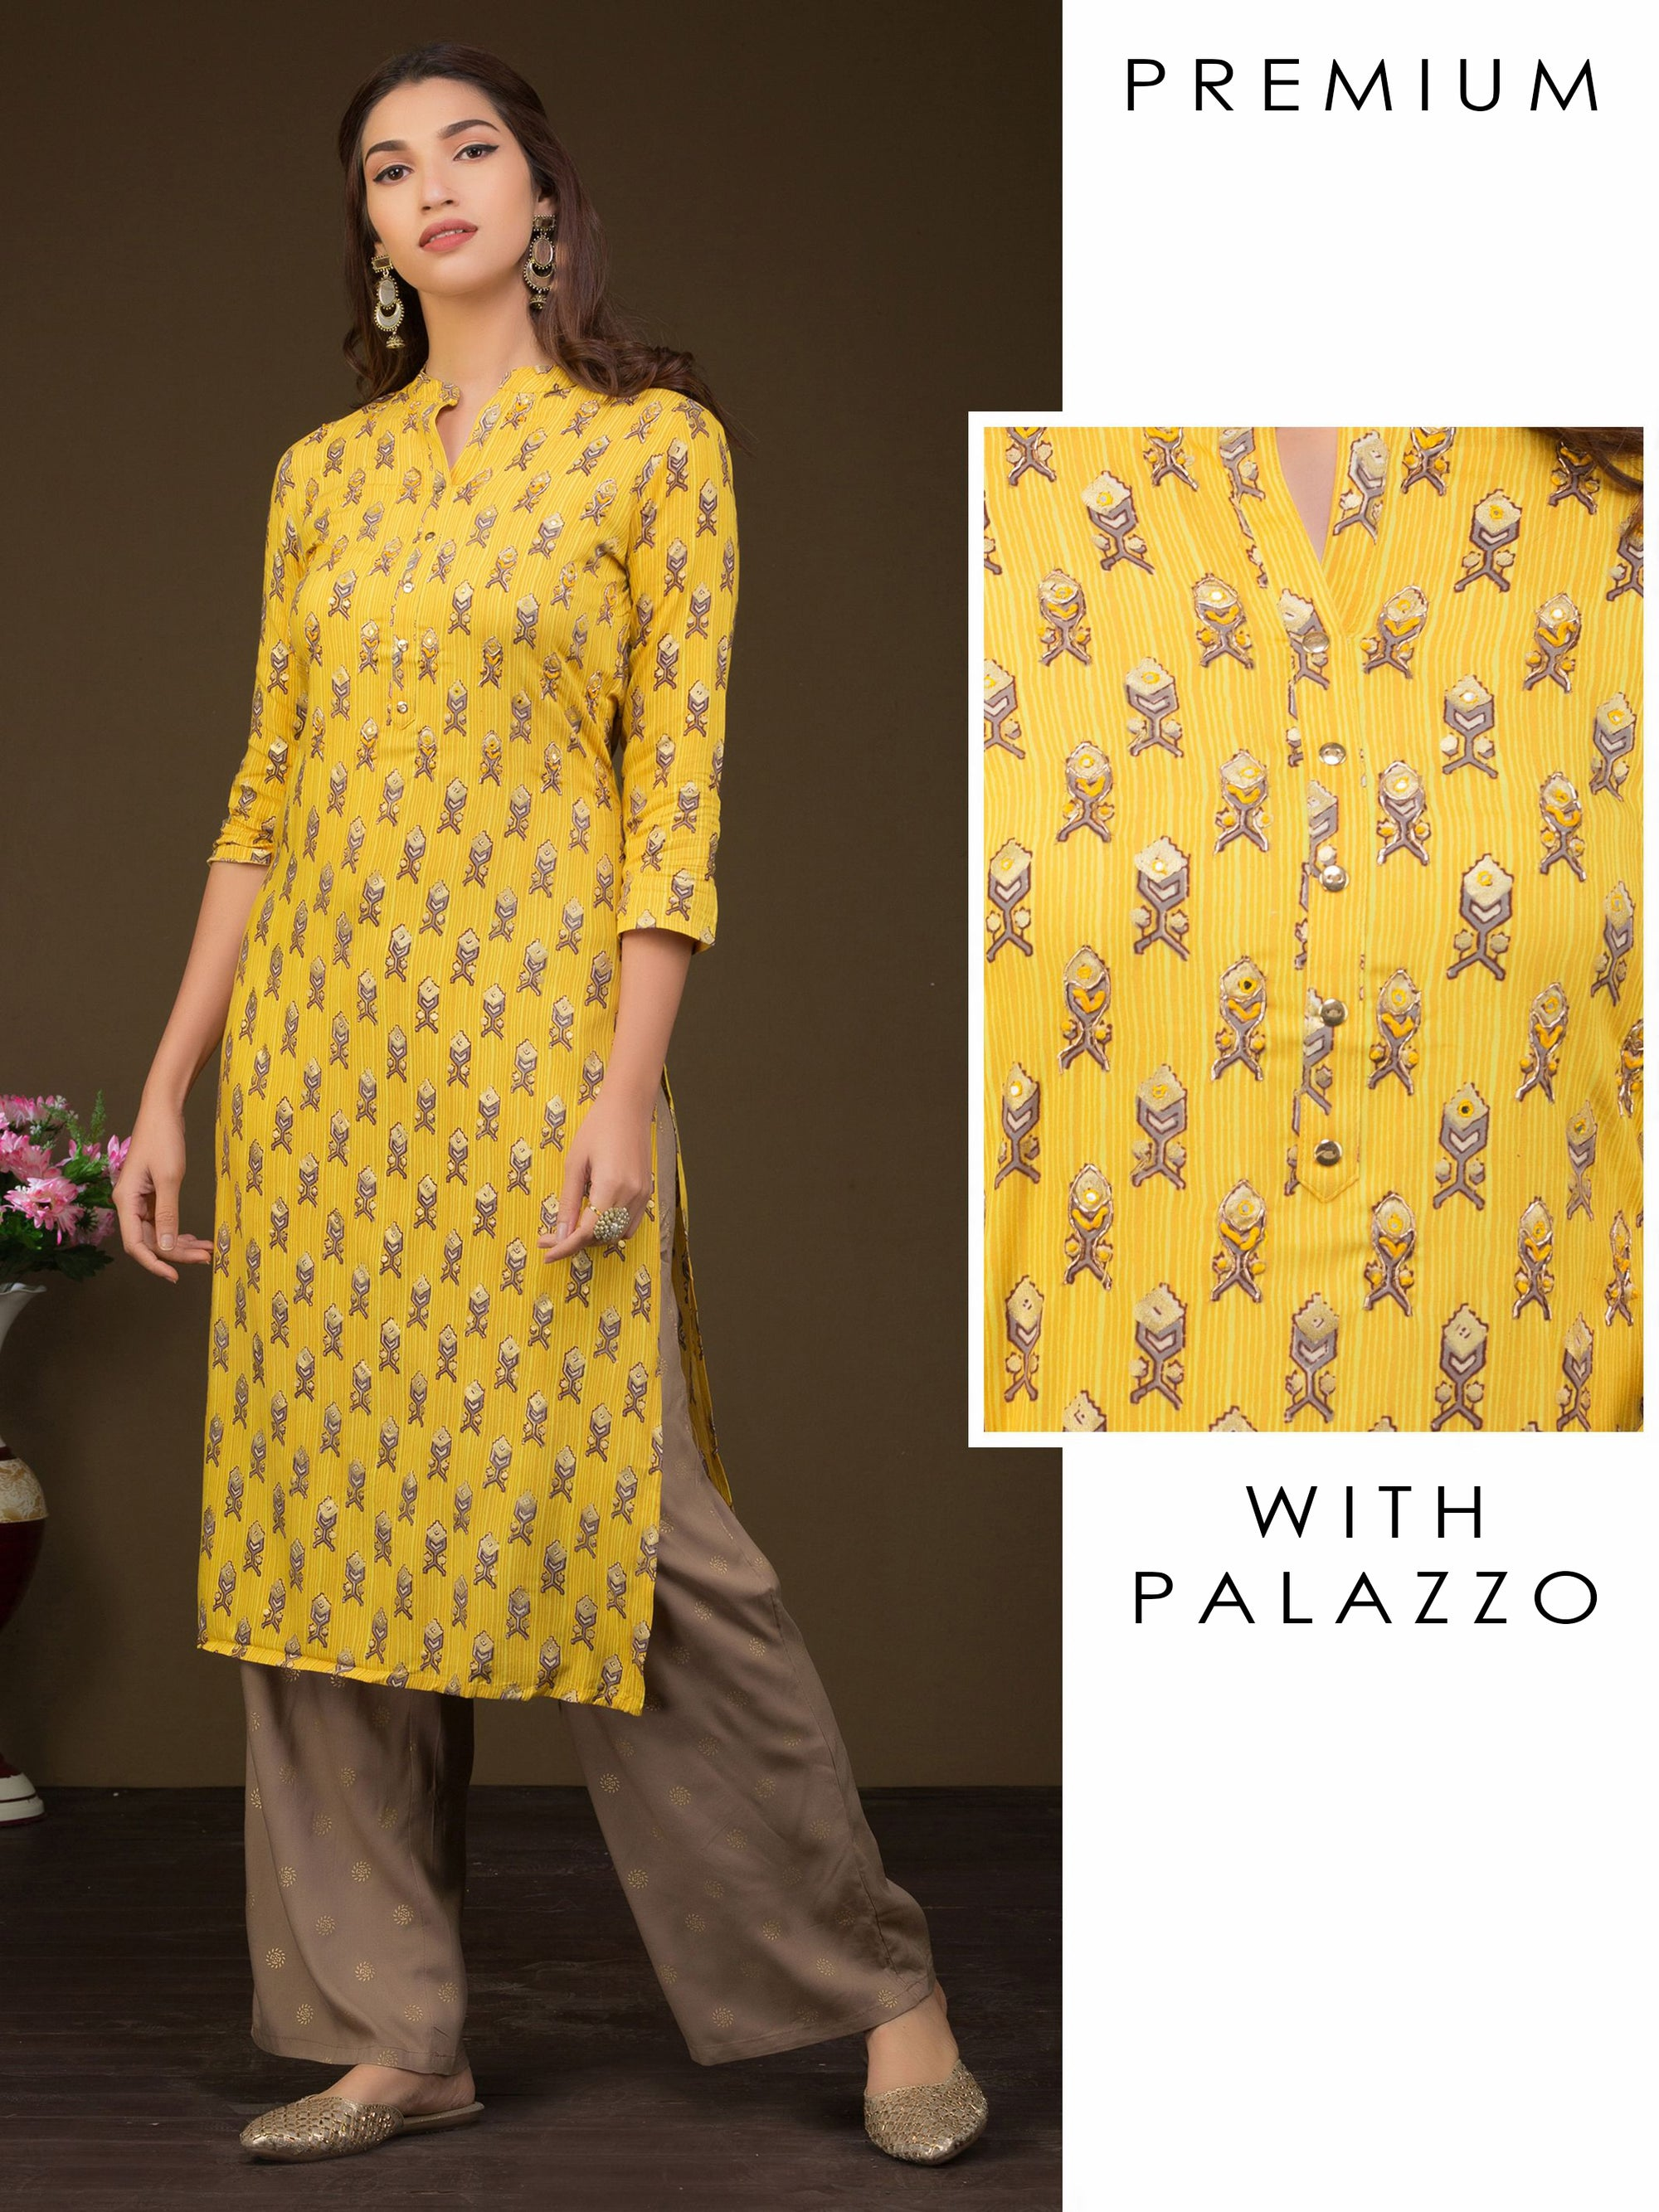 Printed Khari Gold Highlighted, Zardosi Work With Mirror Work Kurta And Palazzo Set - Yellow With Grey